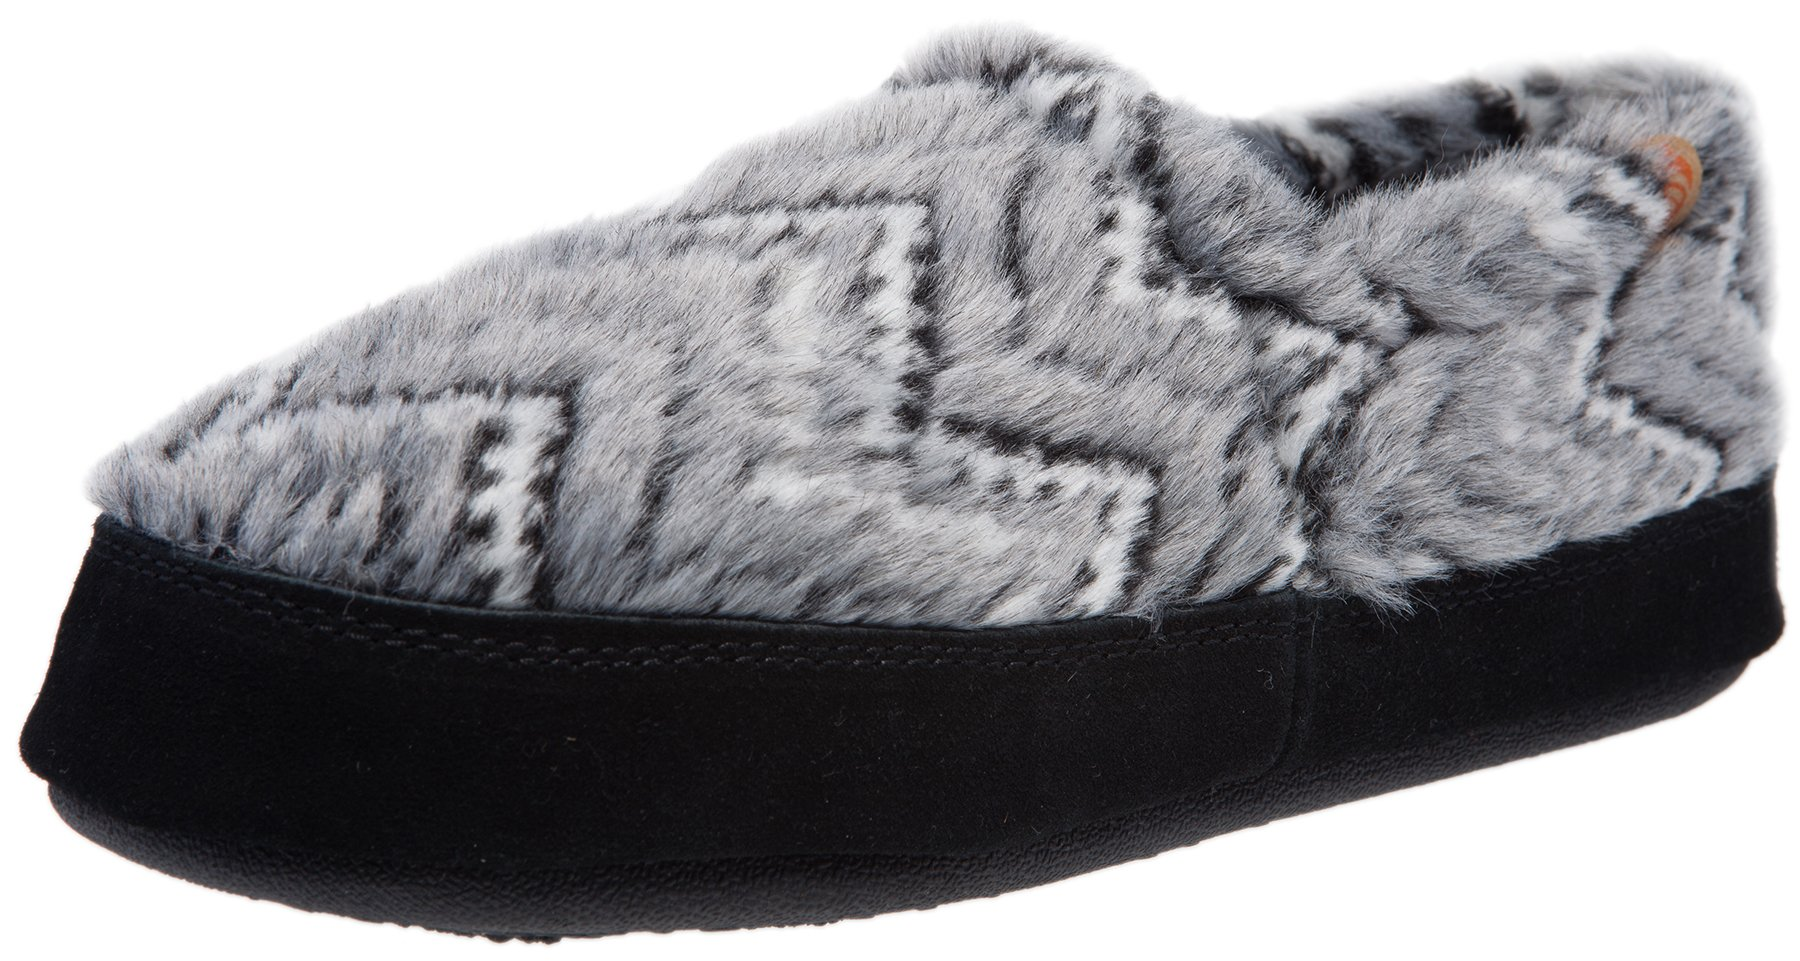 ACORN Women's Acorn Moc Slip-On Loafer (8-9 B(M) US, Grey Zig-Zag)